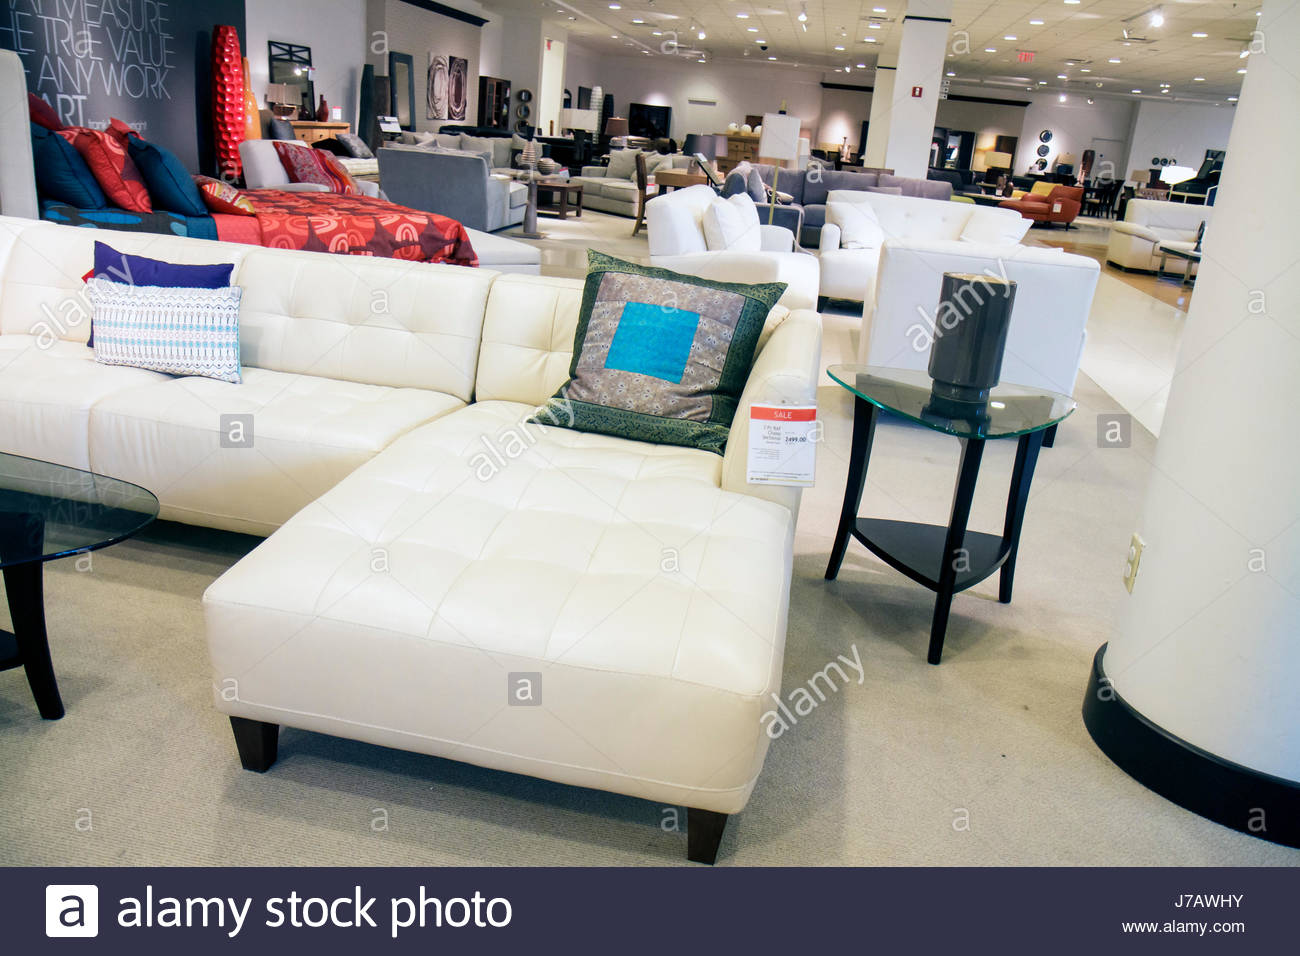 Attrayant Miami Florida Aventura Macyu0027s Department Store Furniture Sofa Retail  Display For Sale Shopping